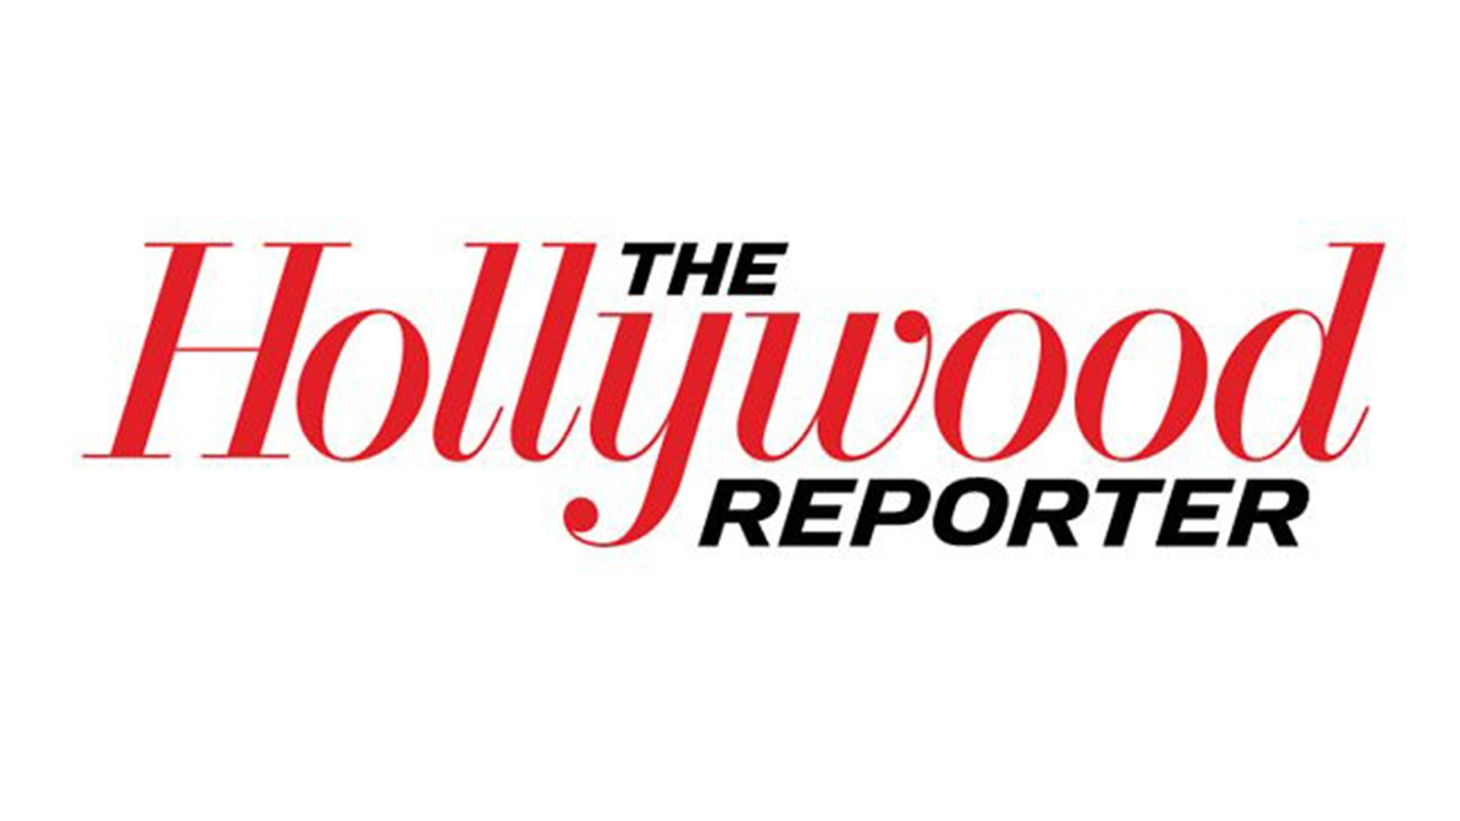 The logo of the magazine The Hollywood Reporter.